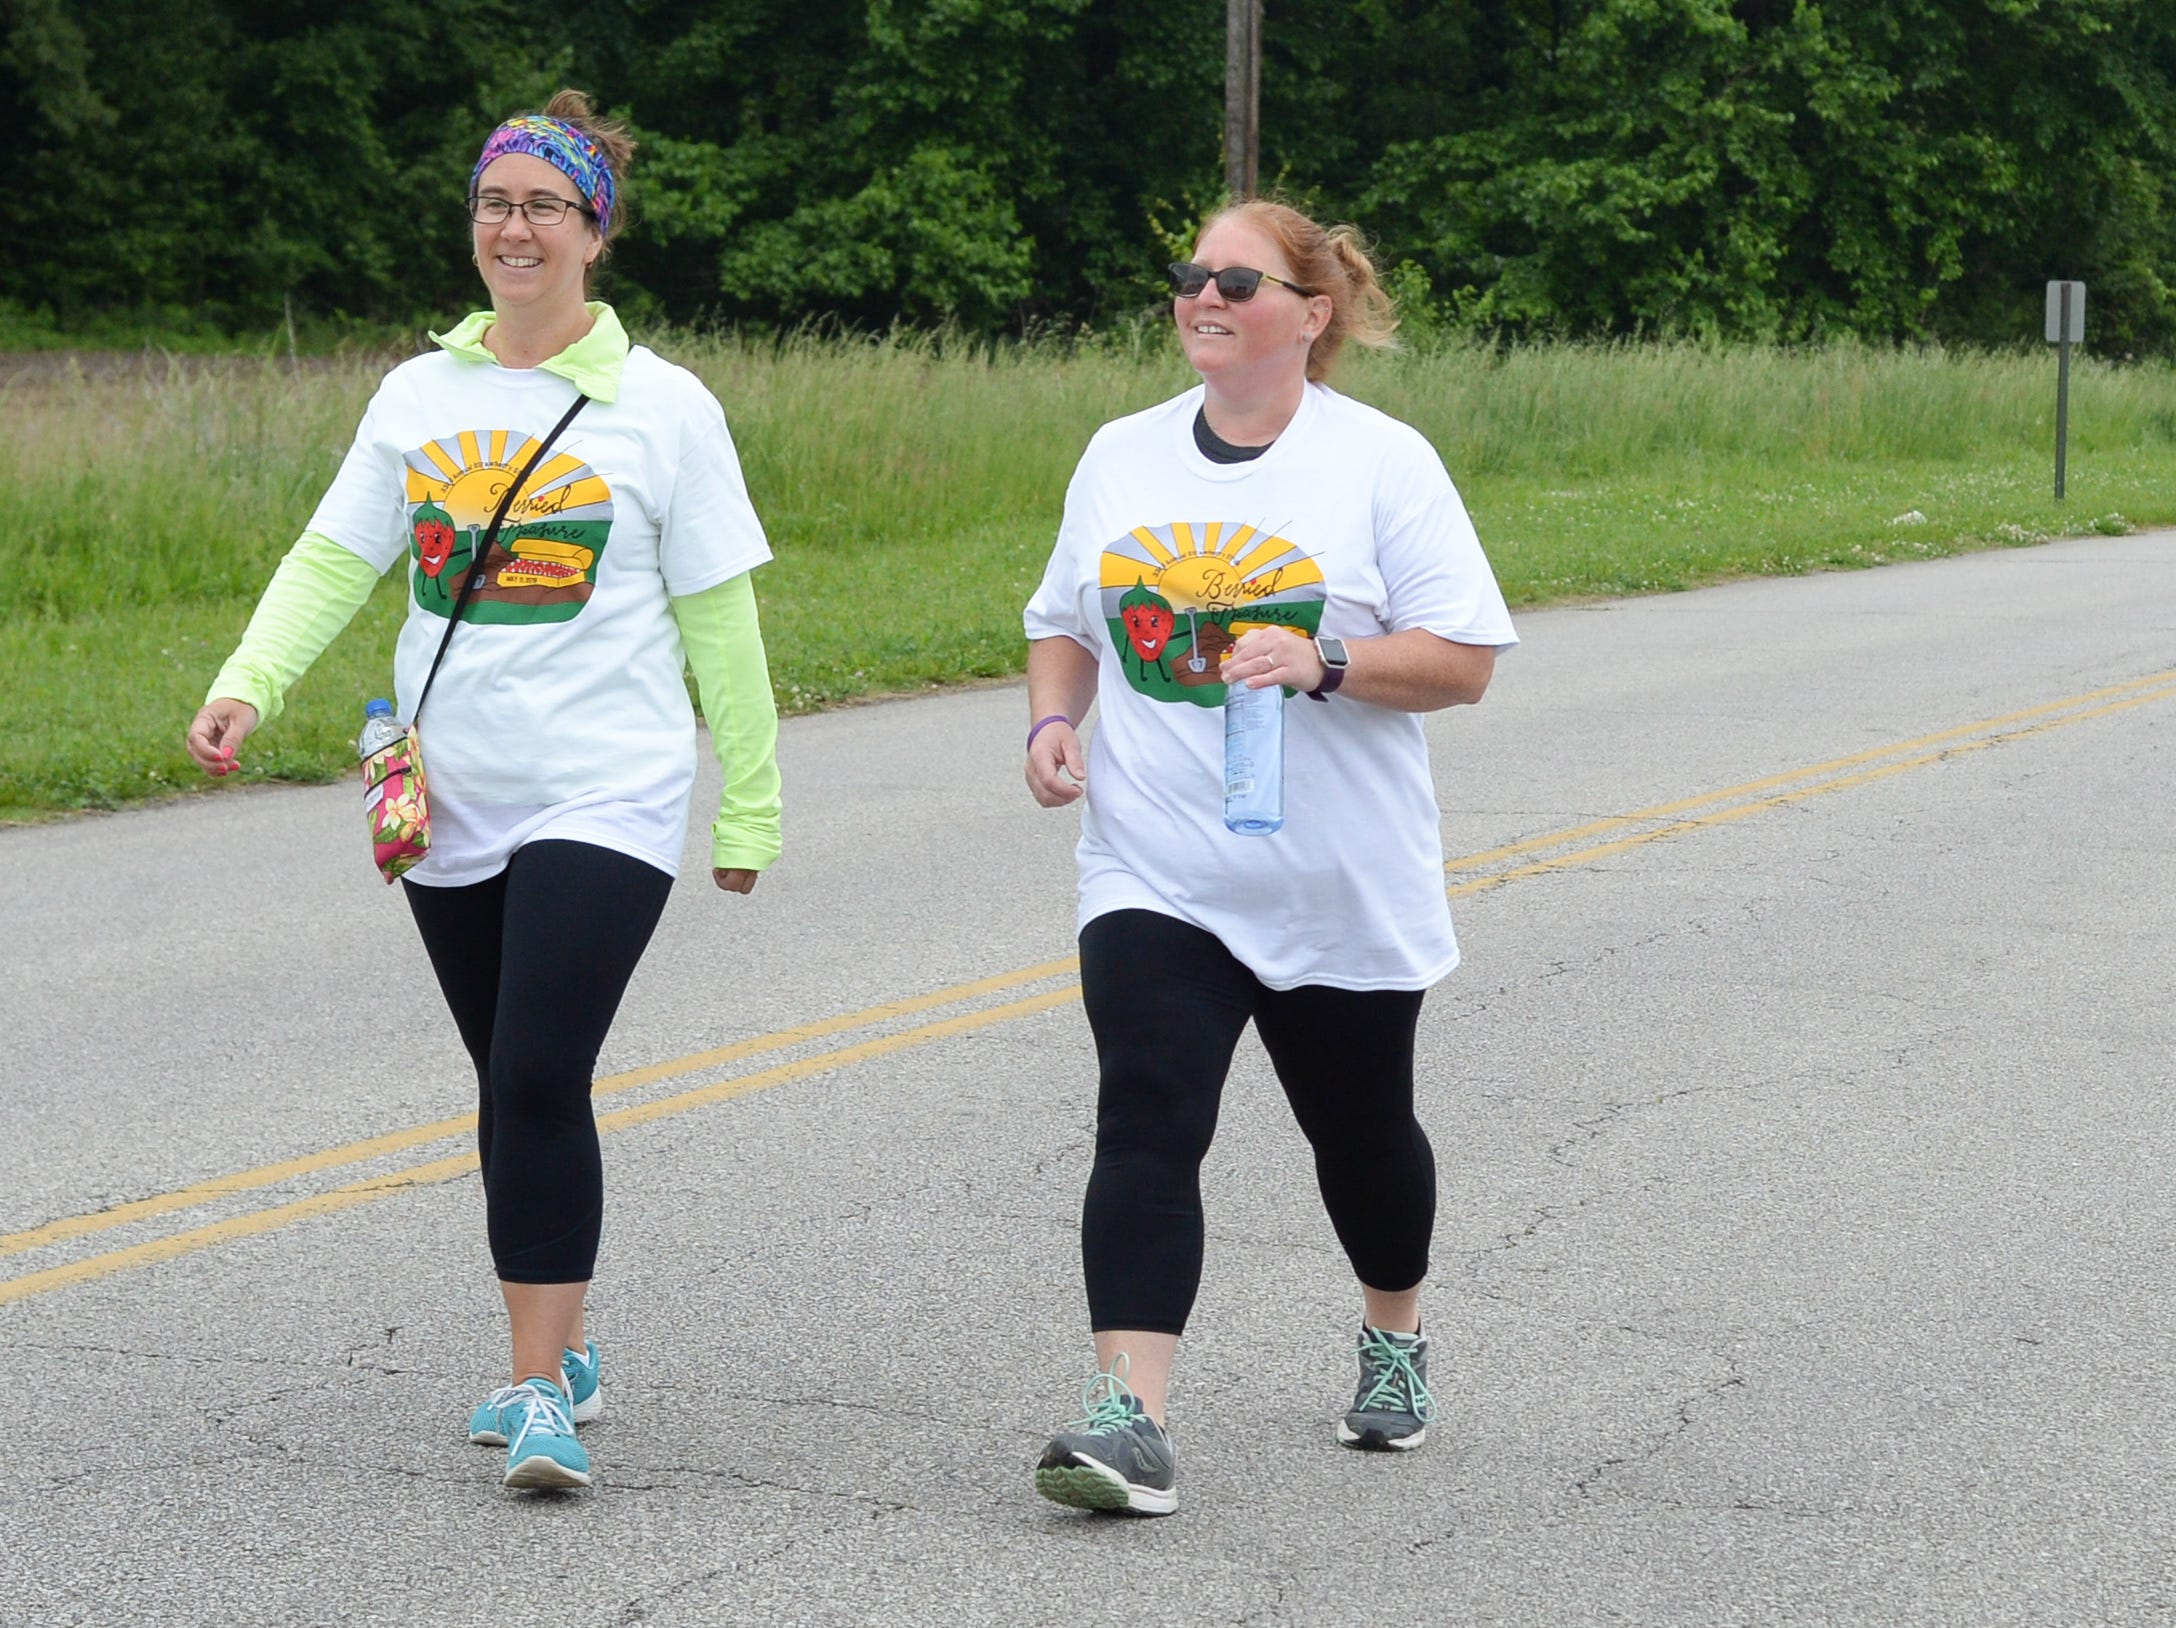 Stephanie Rayniak and Stacy Howell participate in the Strawberry Stride at Portland High School during the 78th Annual Middle Tennessee Strawberry Festival presented by the Portland Chamber of Commerce in Portland on Saturday, May 11.